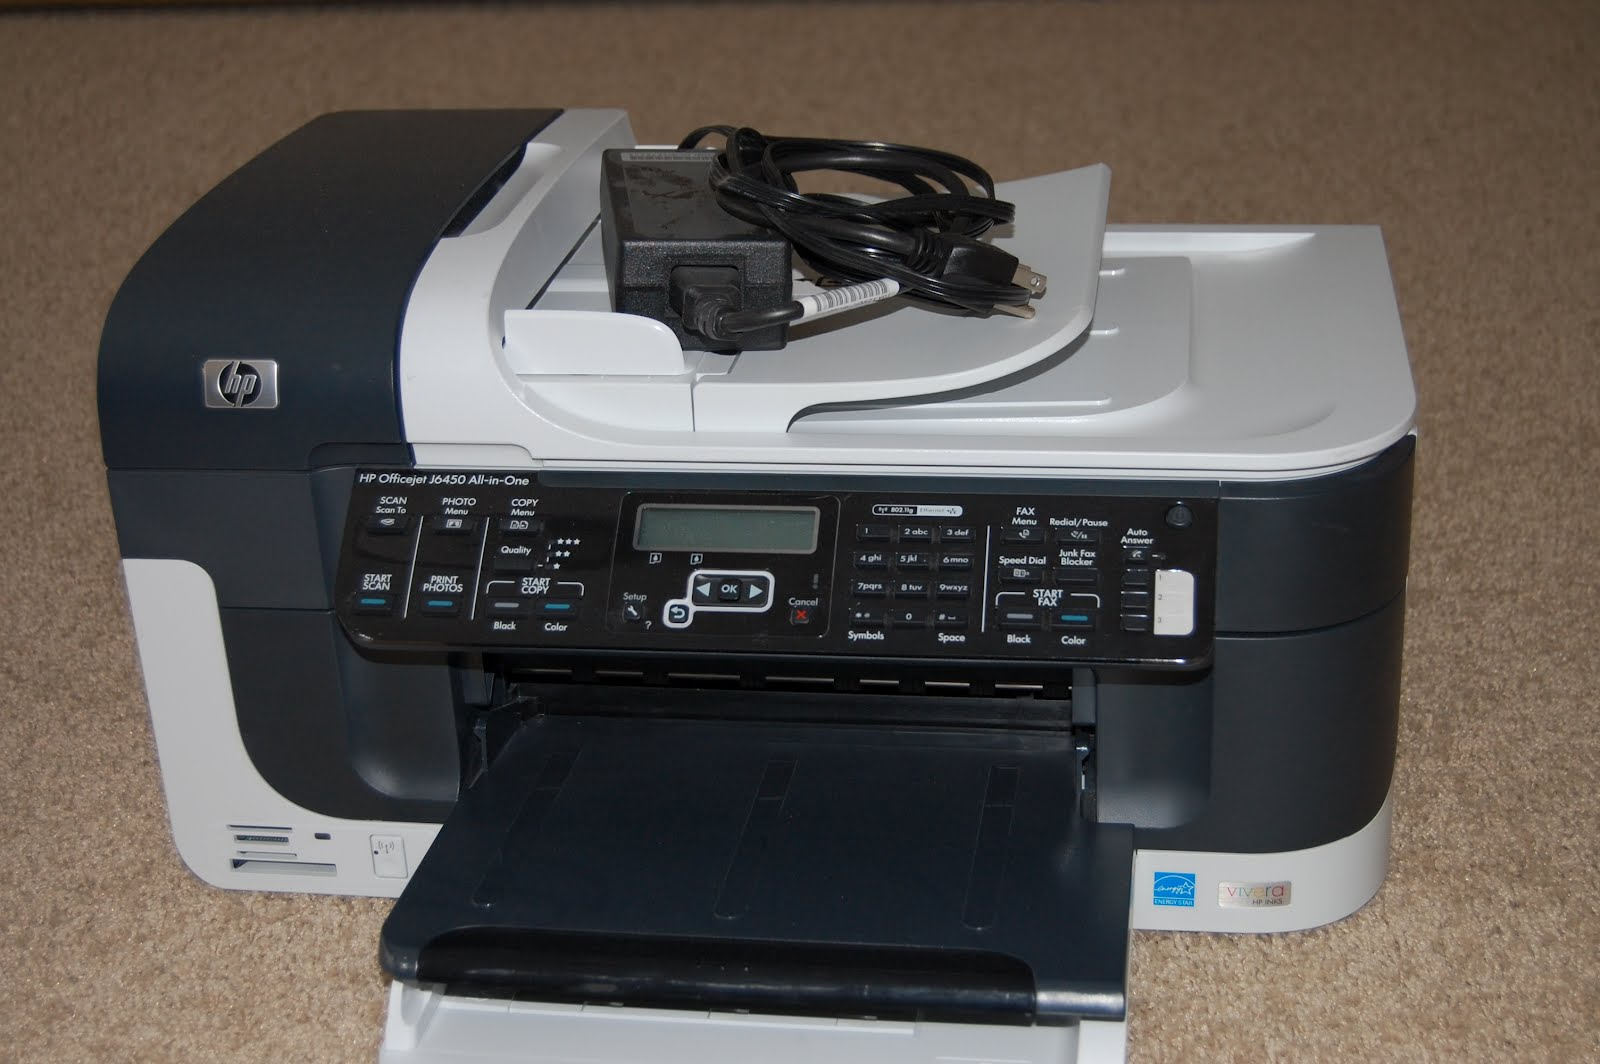 Lexmark Z615 Windows 7 Driver Download